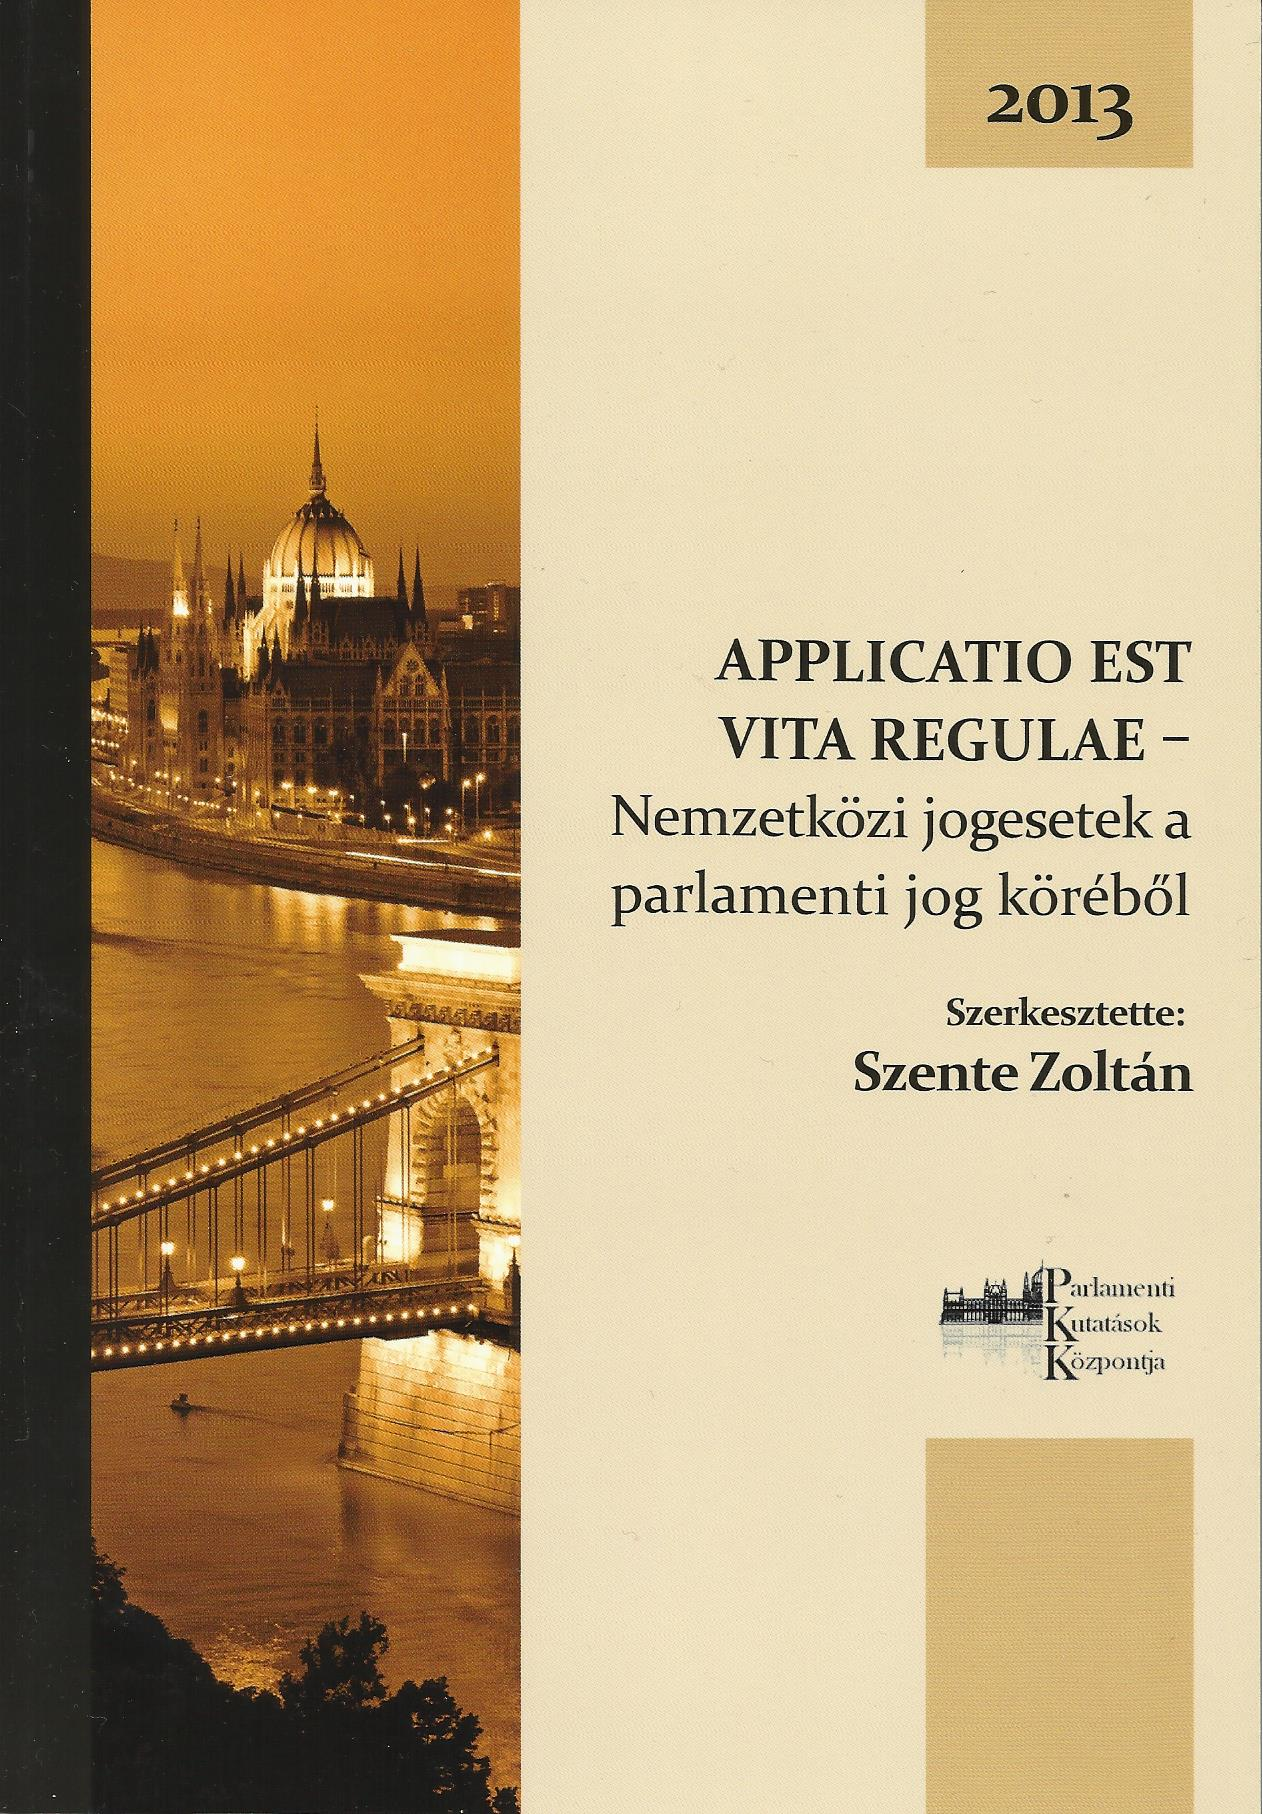 Applicatio_est_vita_regulae